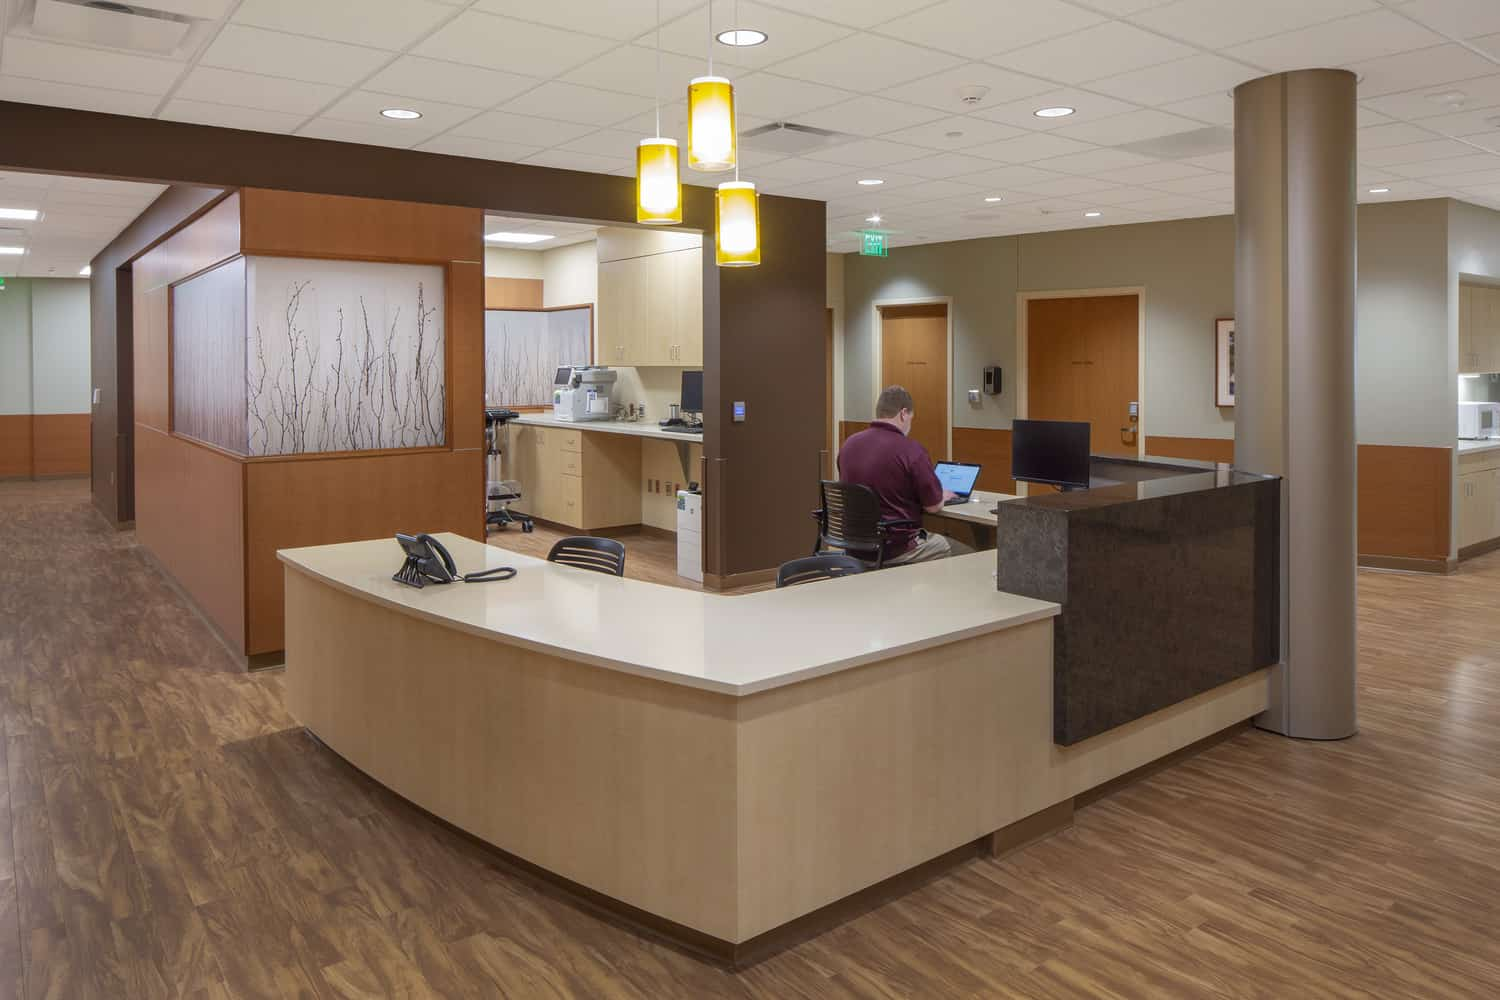 Avera Merrill Pioneer Community Hospital Replacement Critical Access Hospital